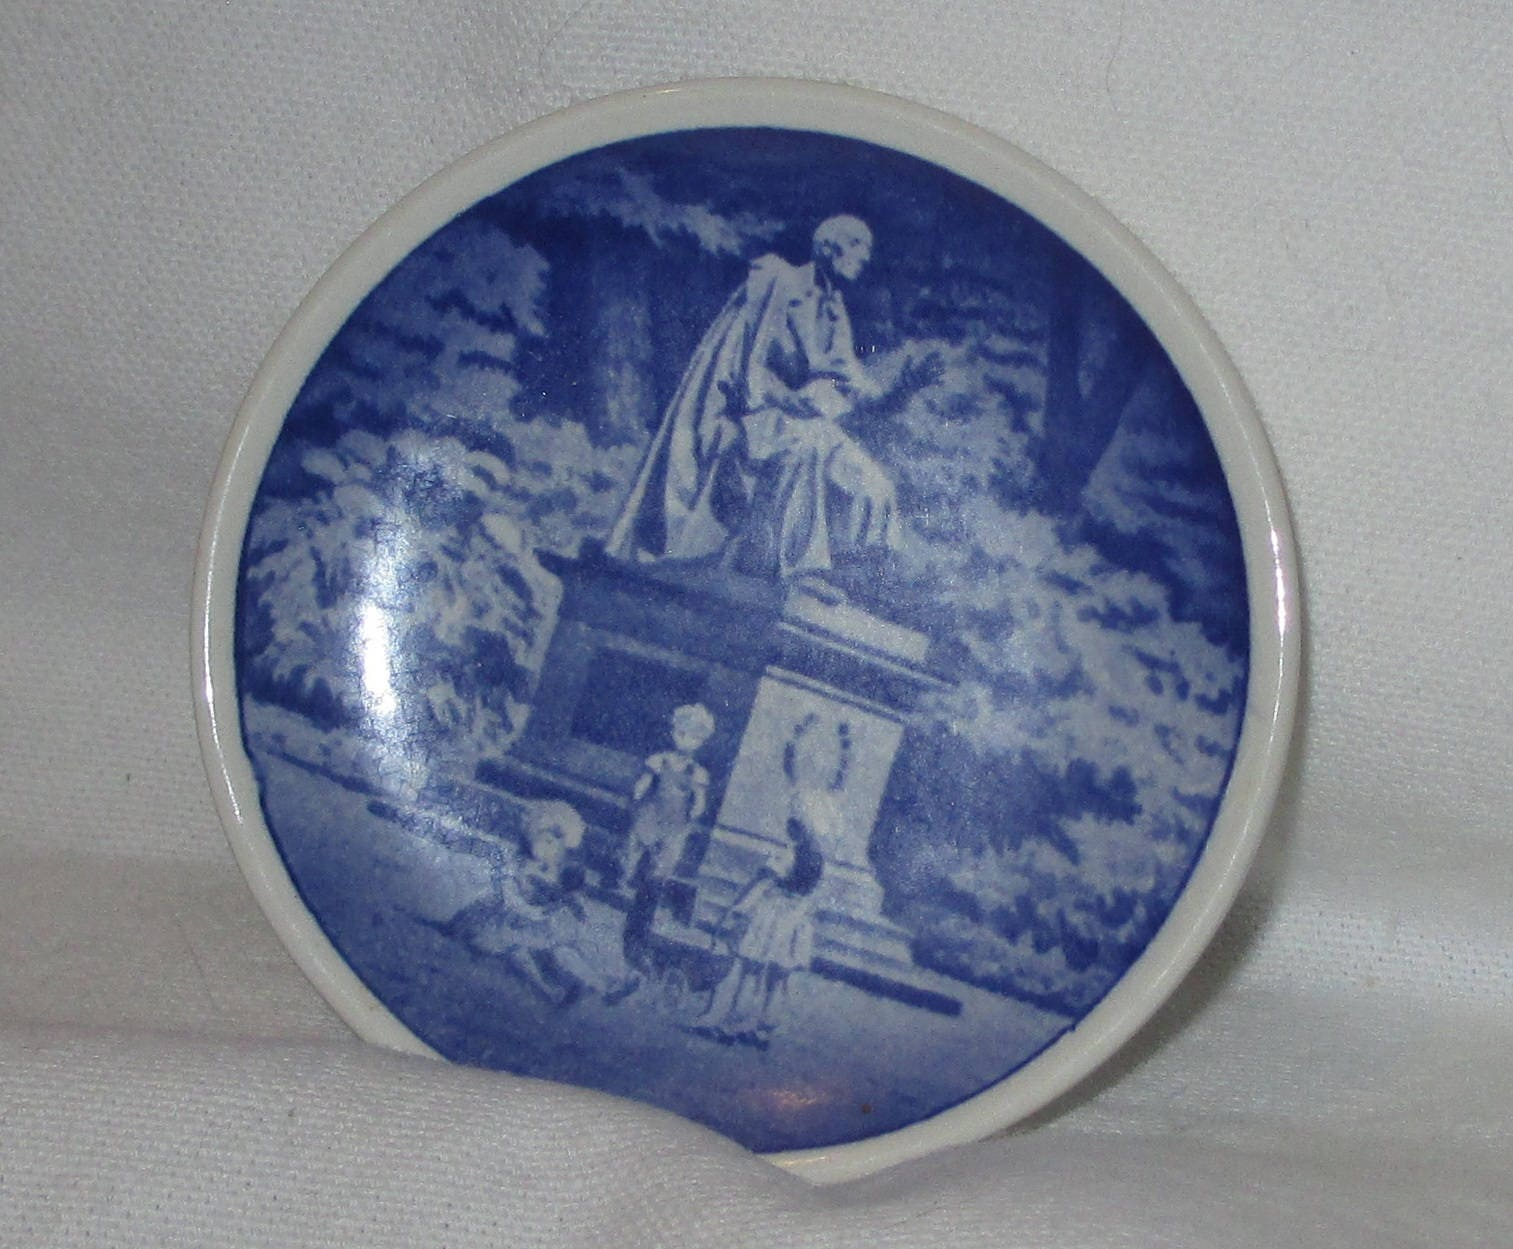 Blue And White Decorative Wall Plates Extraordinary Denmark Tiny Wall Plate Spode Dish Cobalt Blue And White Decor 2018